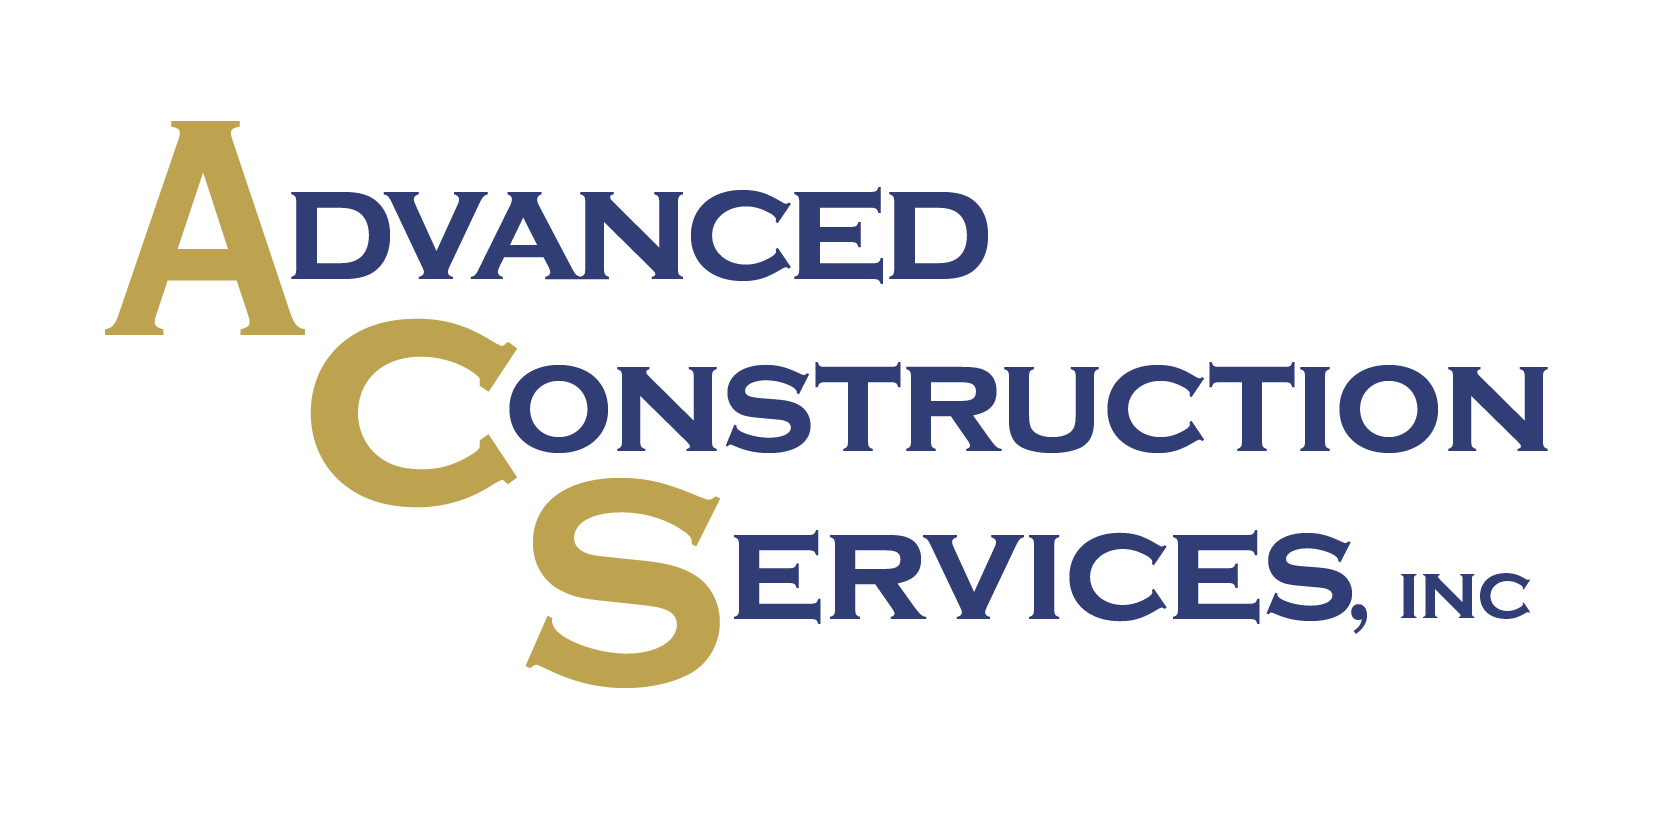 Advanced Construction Services, Inc.